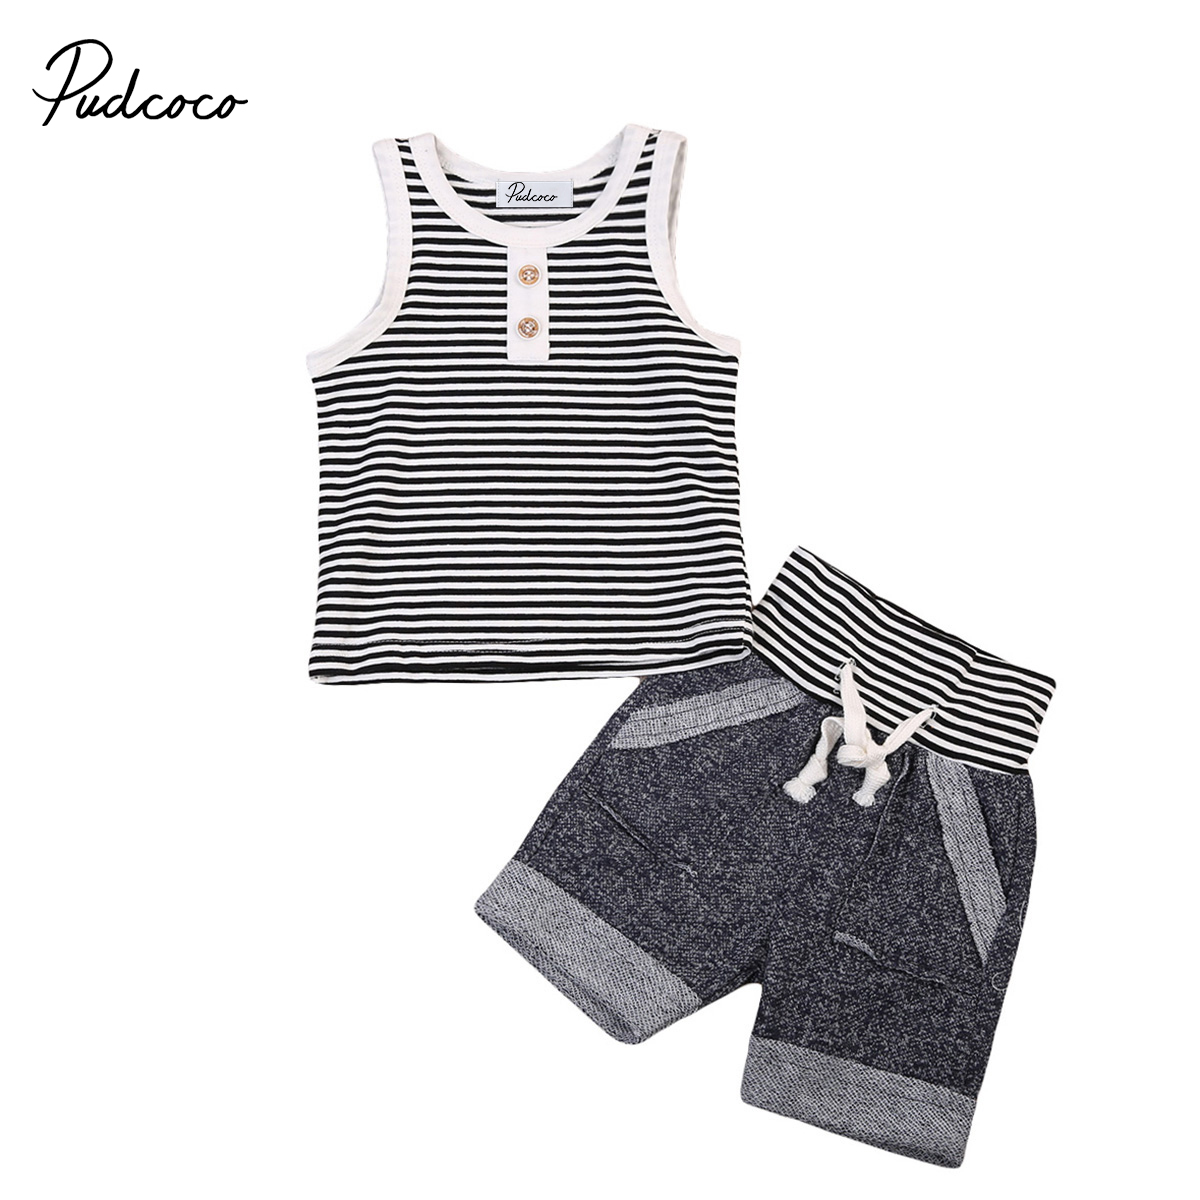 Hot Baby Toddler Kids Boy Clothing Sets Lovely Summer Toddler Boys Striped Casual Clothes T Shirt Tee Top Pants Outfits Set